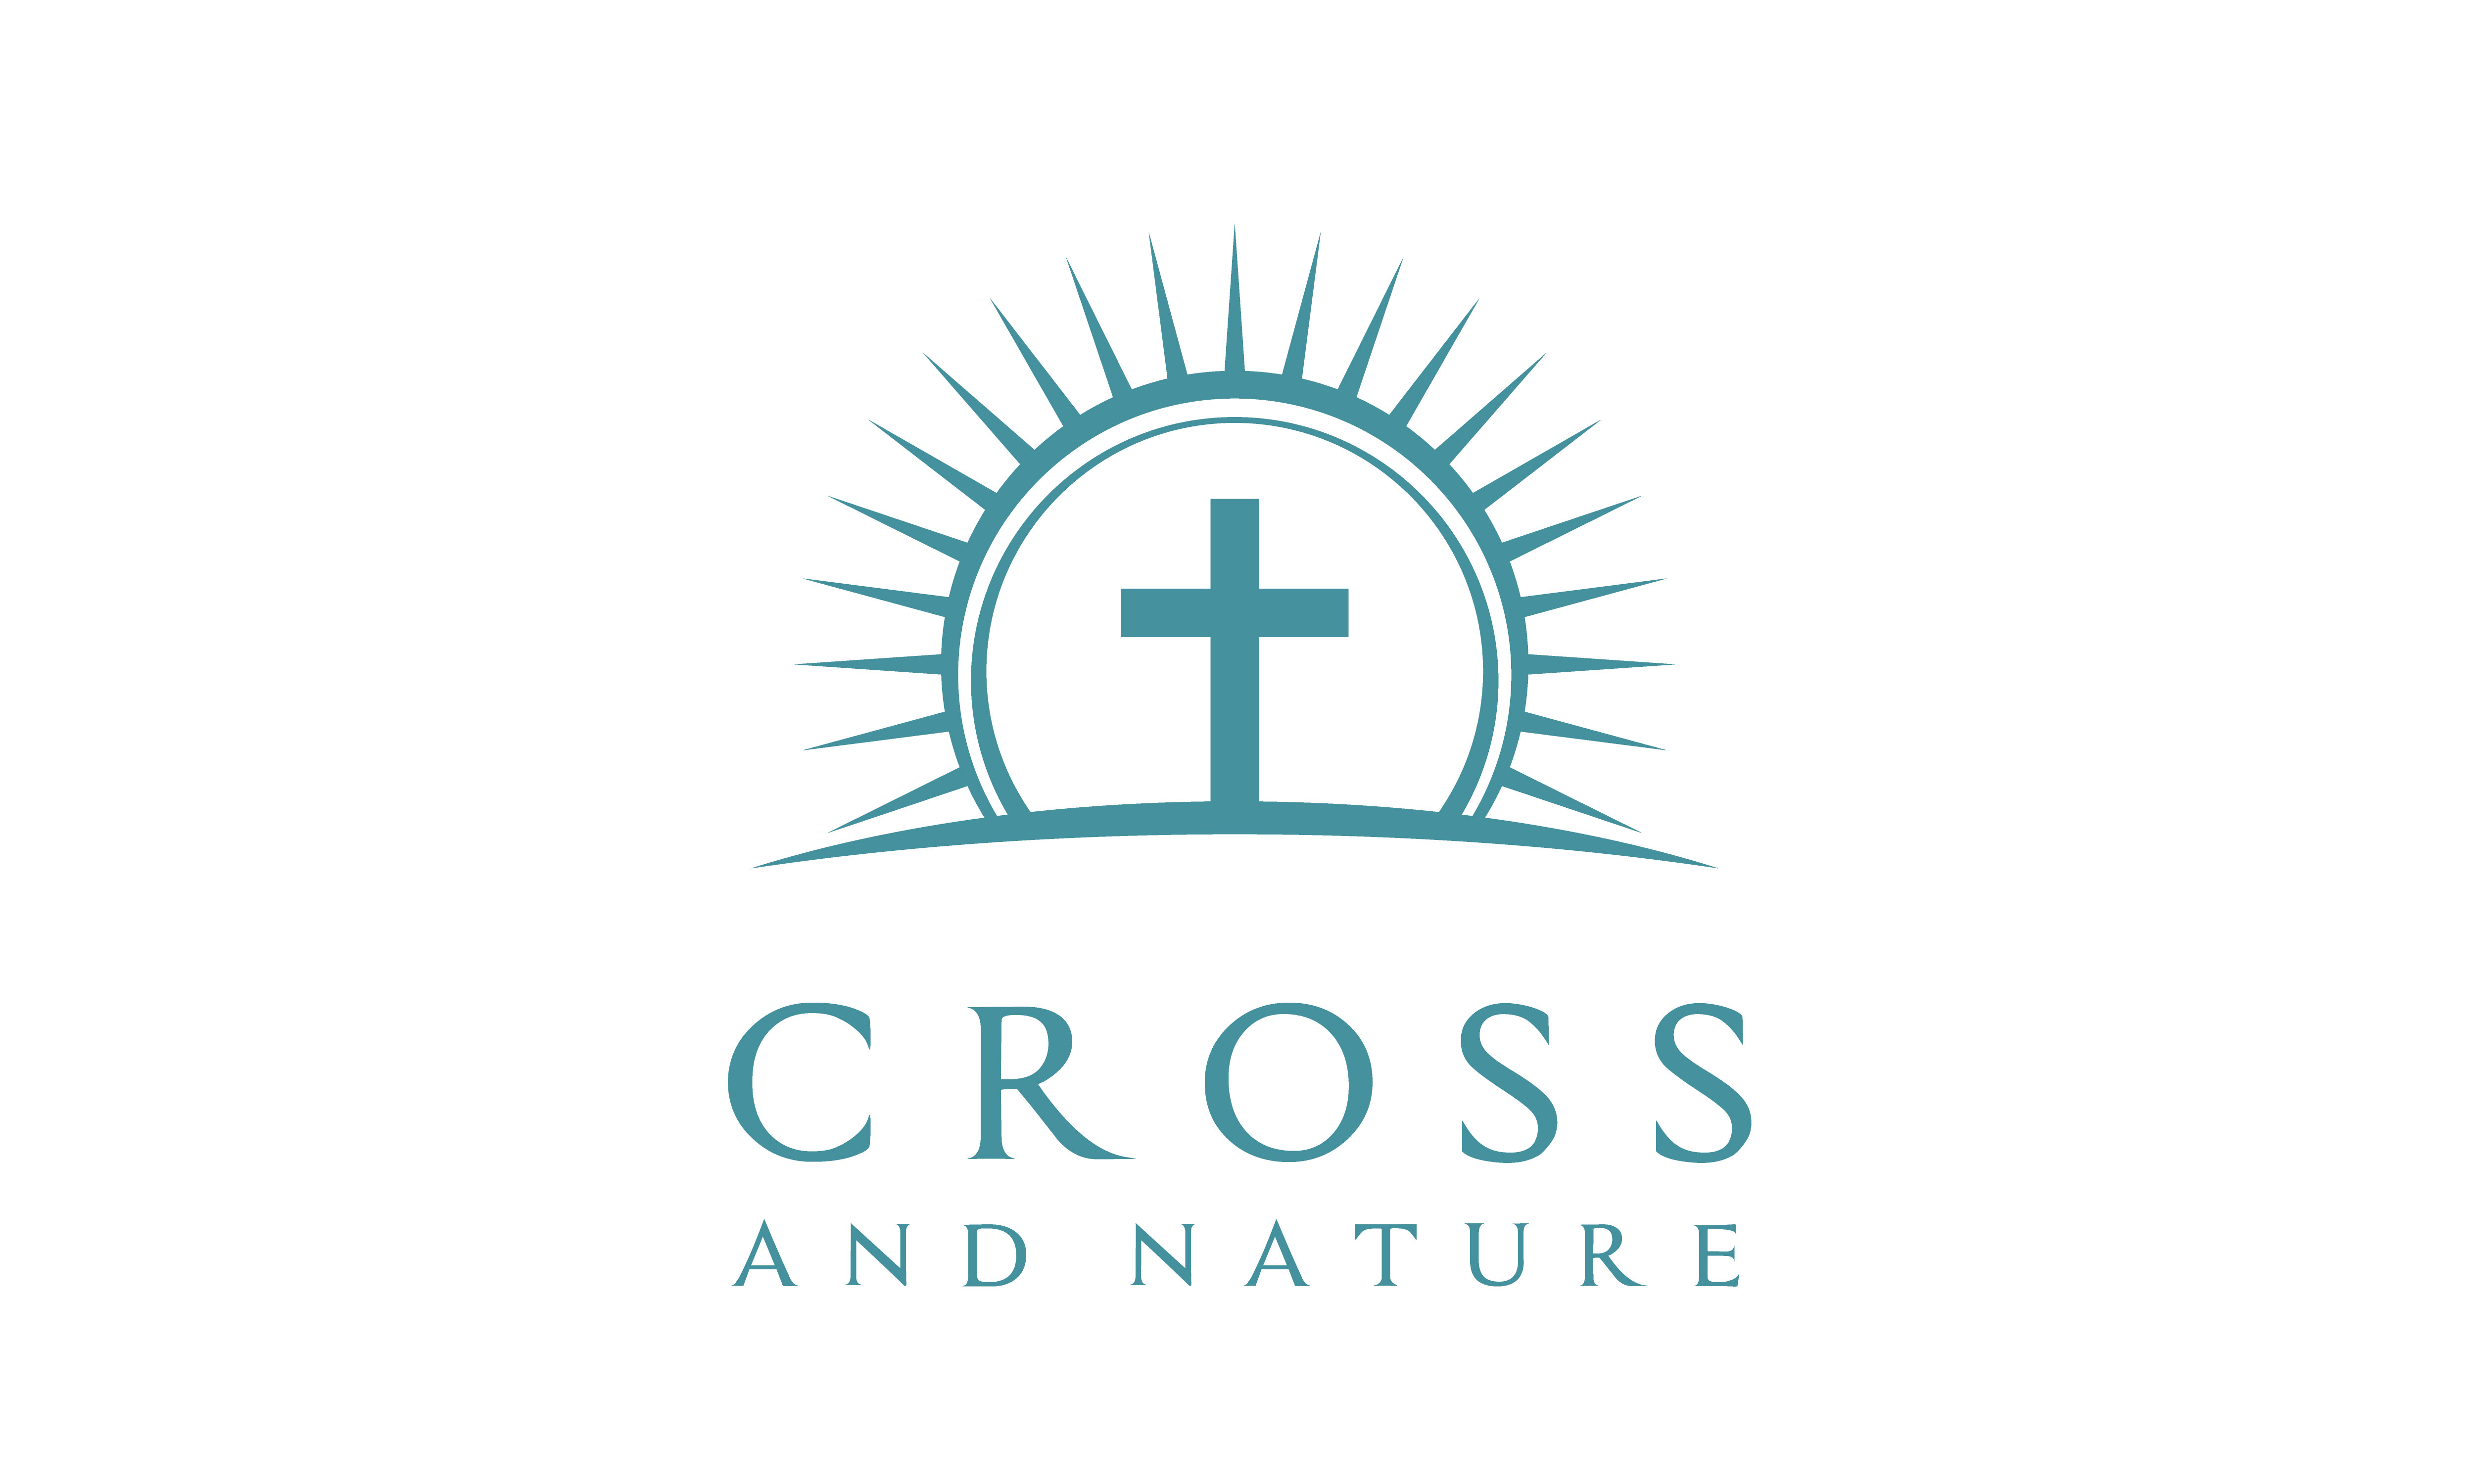 Download Free Nature Christian Jesus Cross Church Logo Graphic By Enola99d for Cricut Explore, Silhouette and other cutting machines.